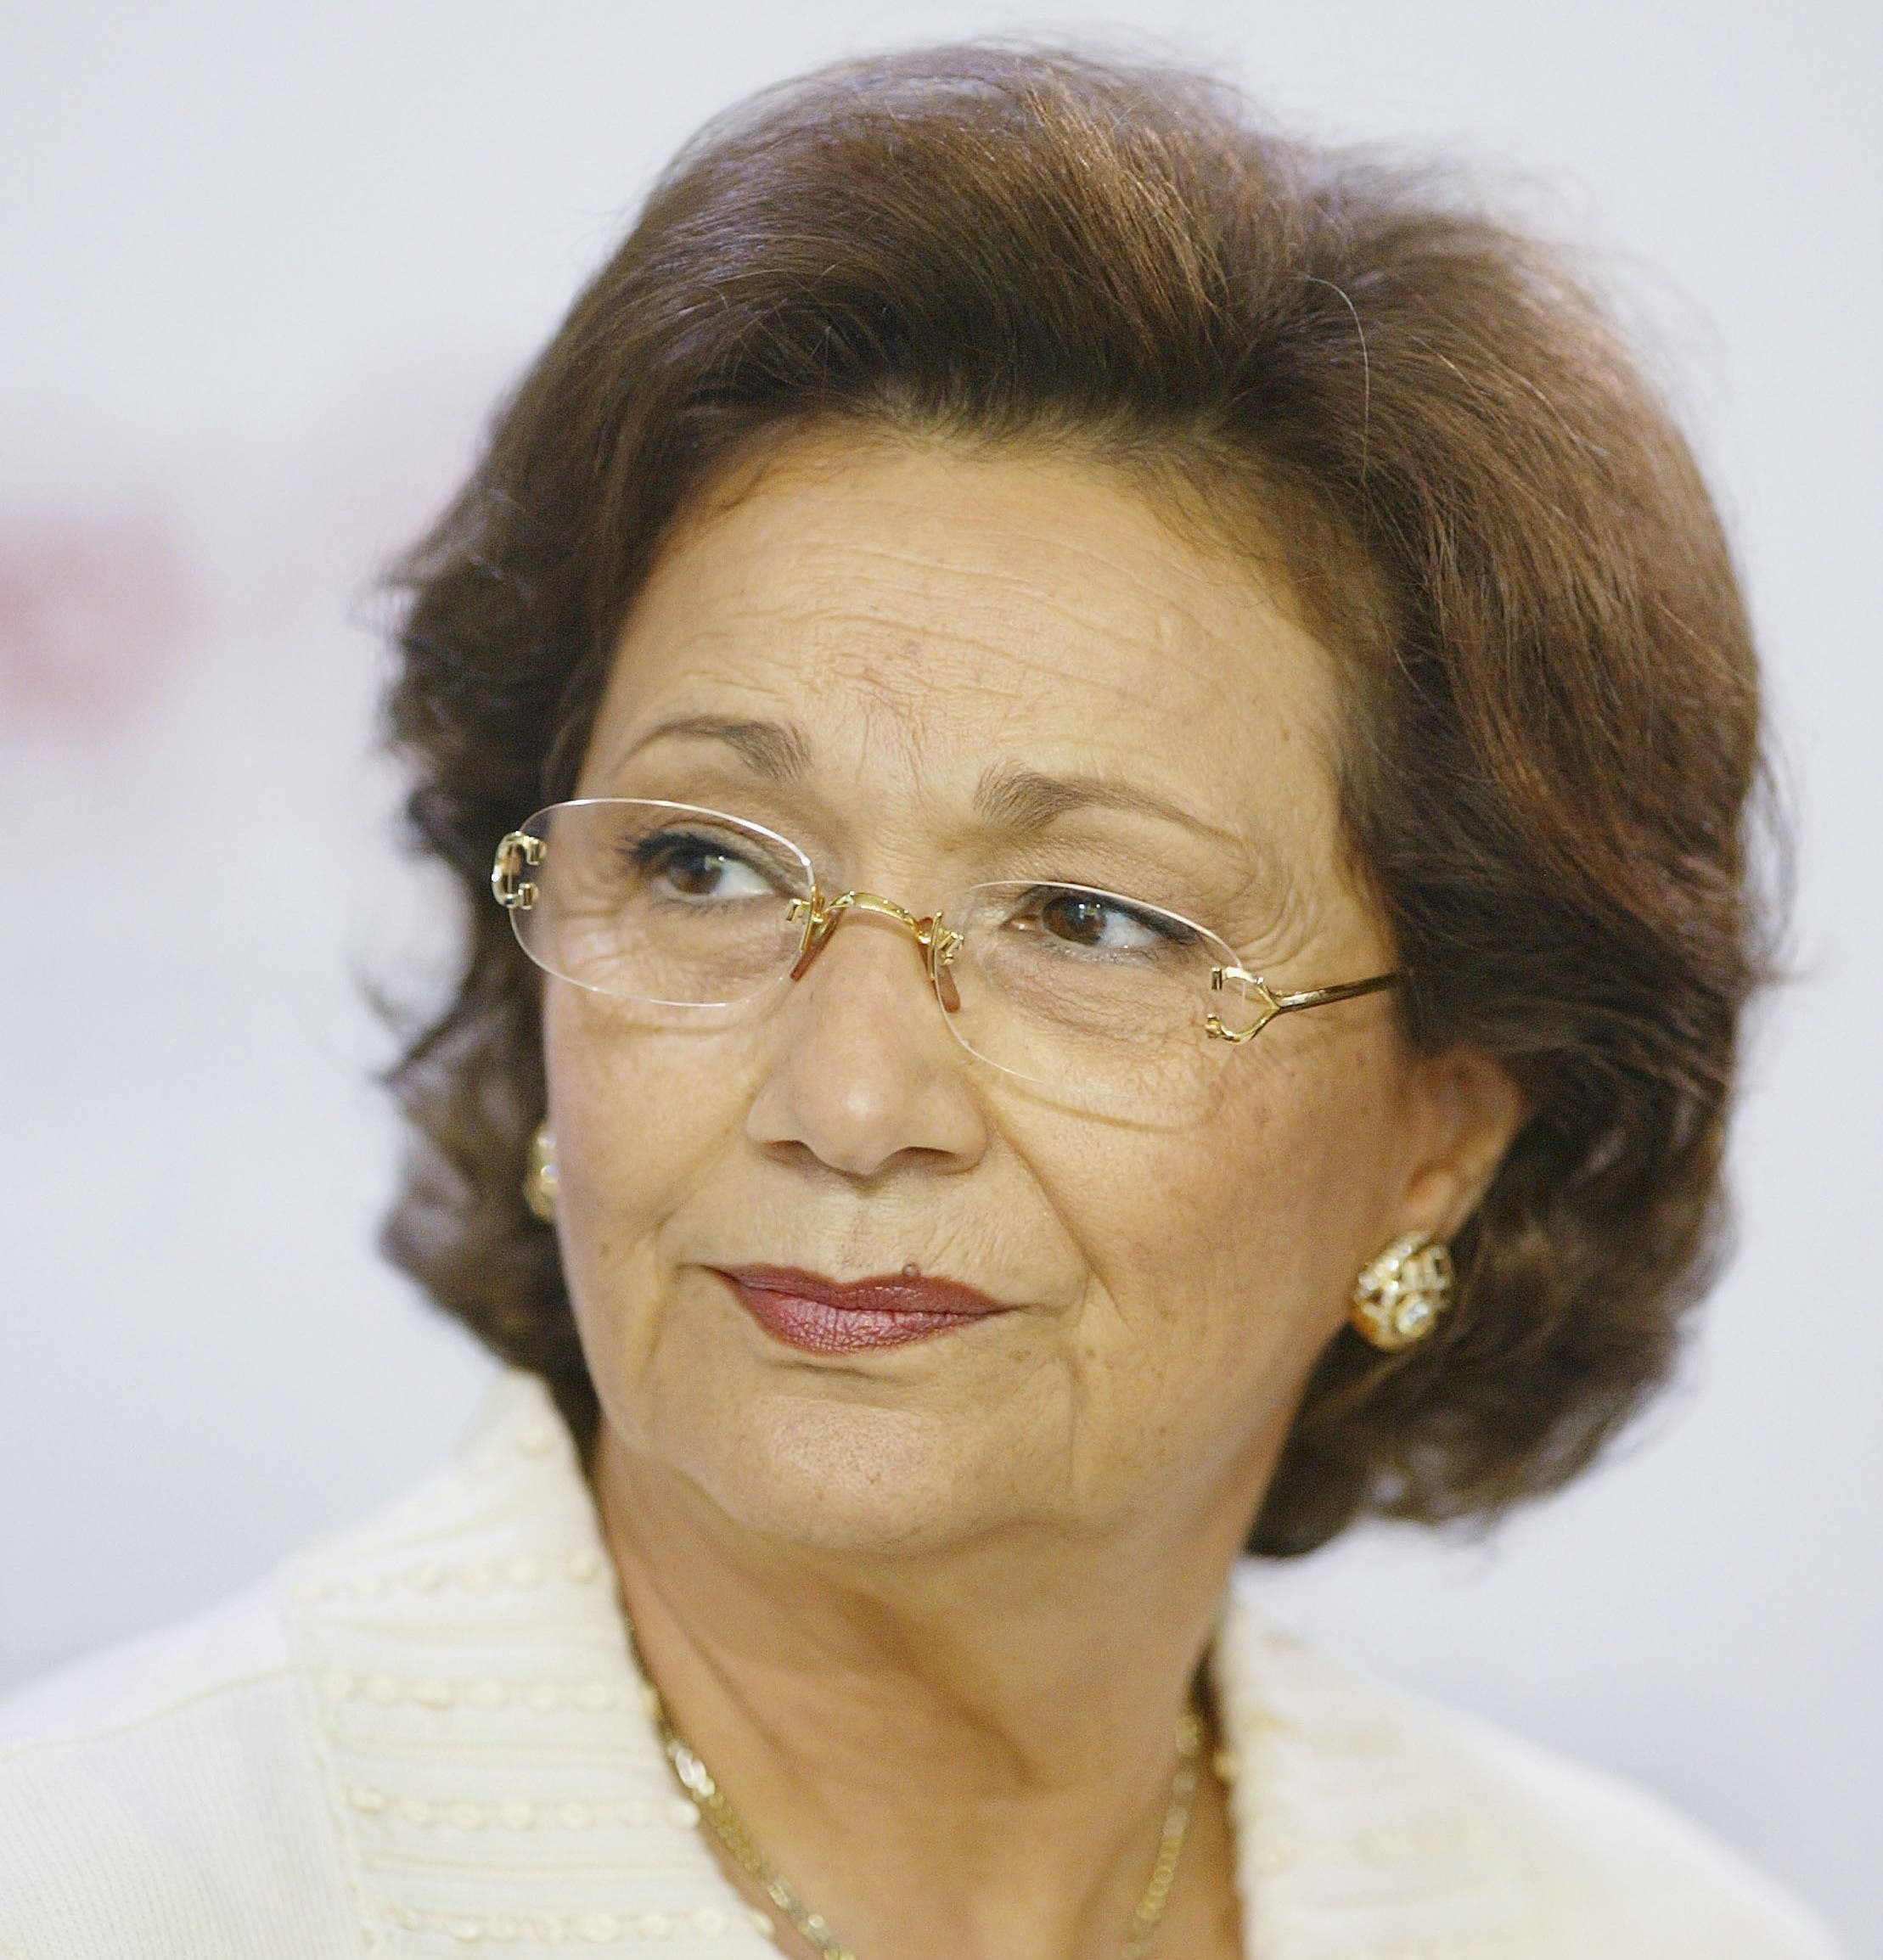 Al-Awa views Suzanne Mubarak as a possible threat to the Egyptian presidential election.